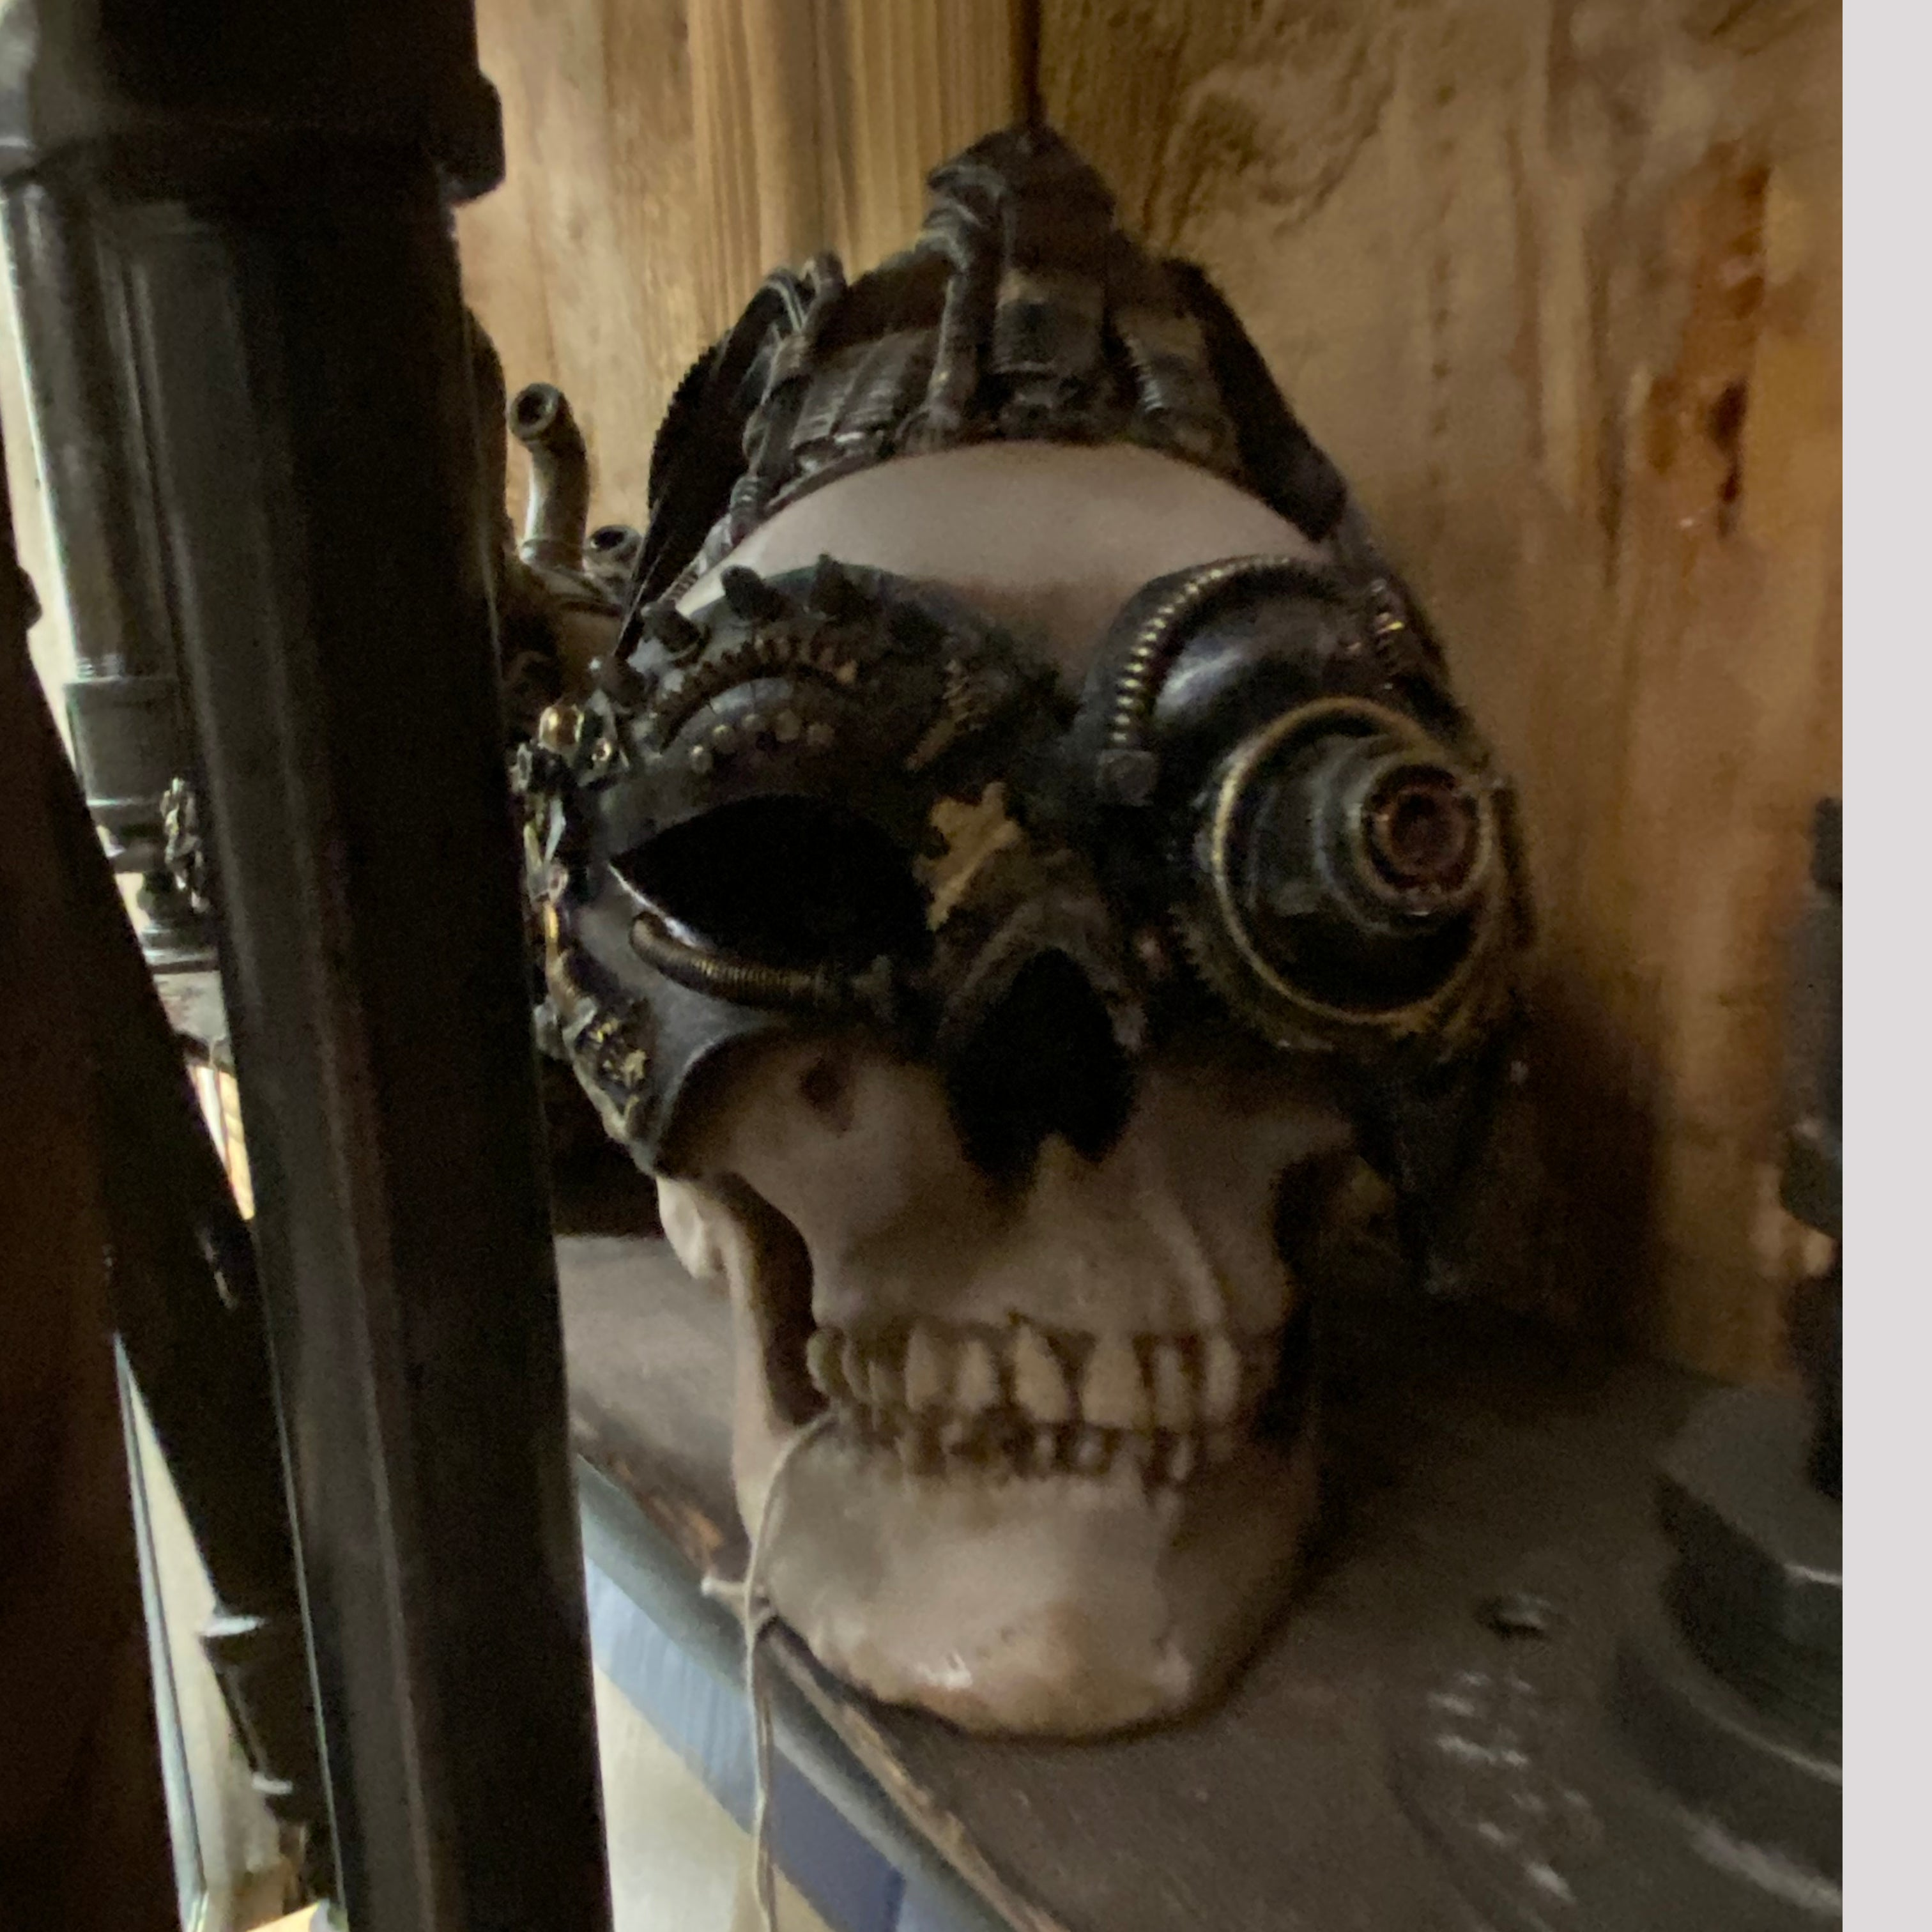 Decorative Skull Ornament - Large